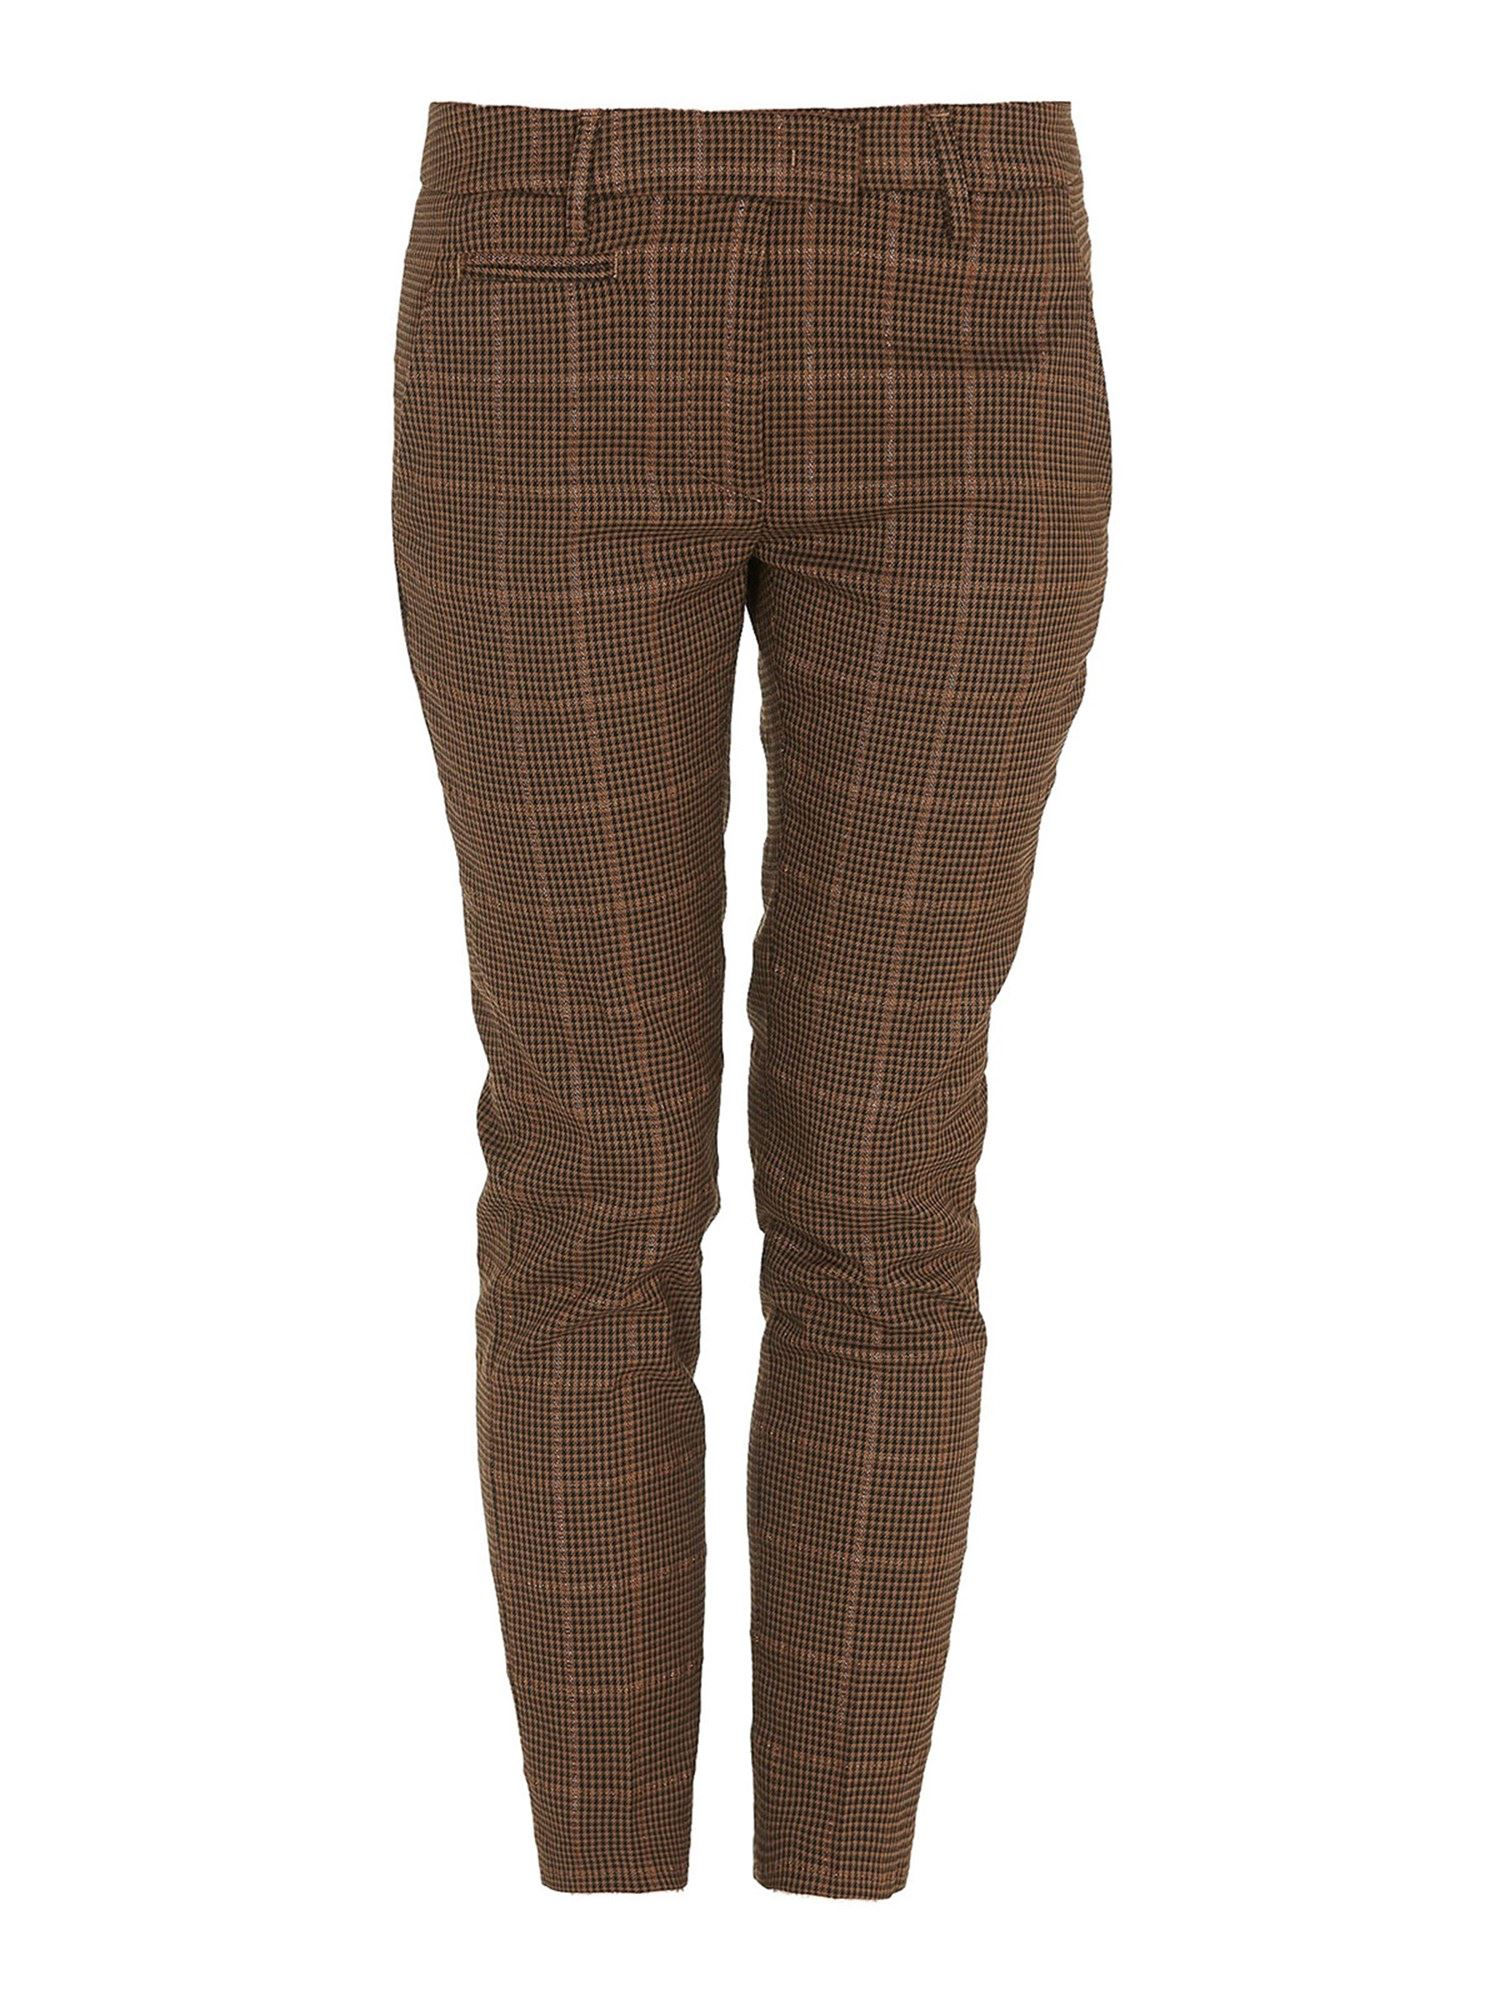 Dondup LUREX PRINCE OF WALES PATTERNED PANTS